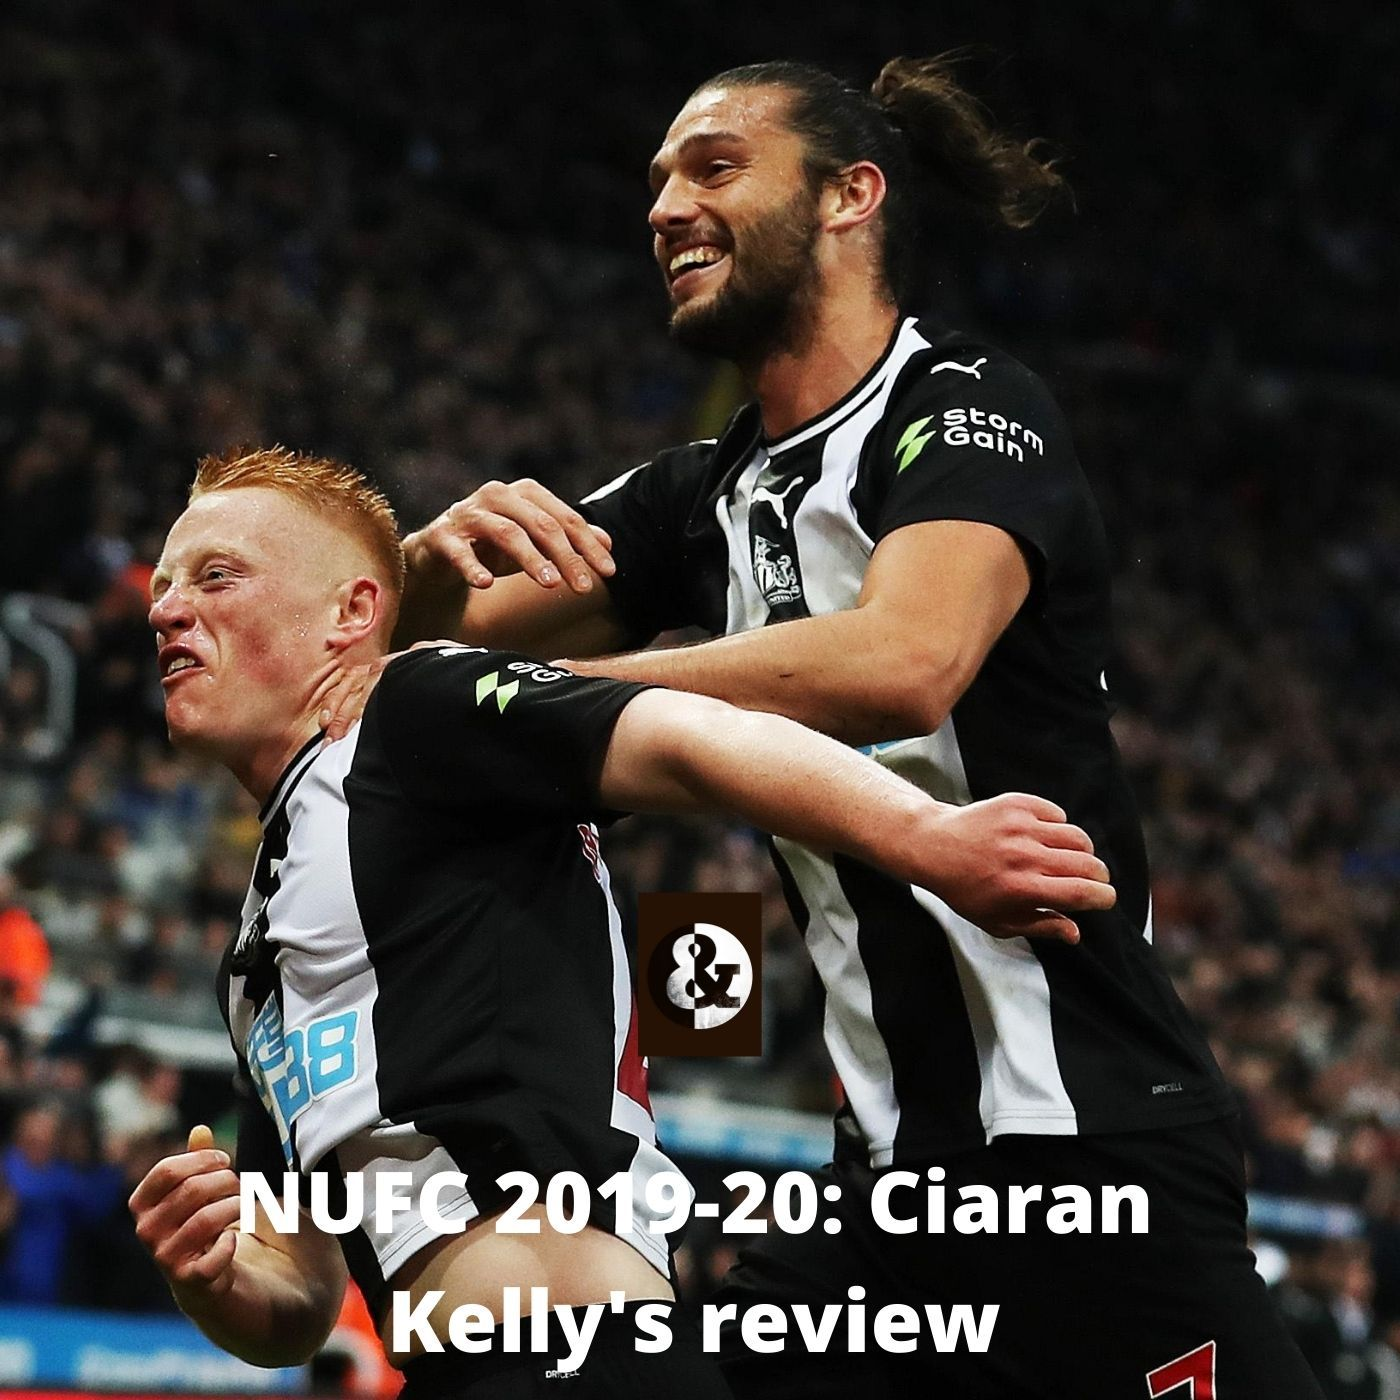 NUFC's 2019-20 campaign: Ciaran Kelly's review